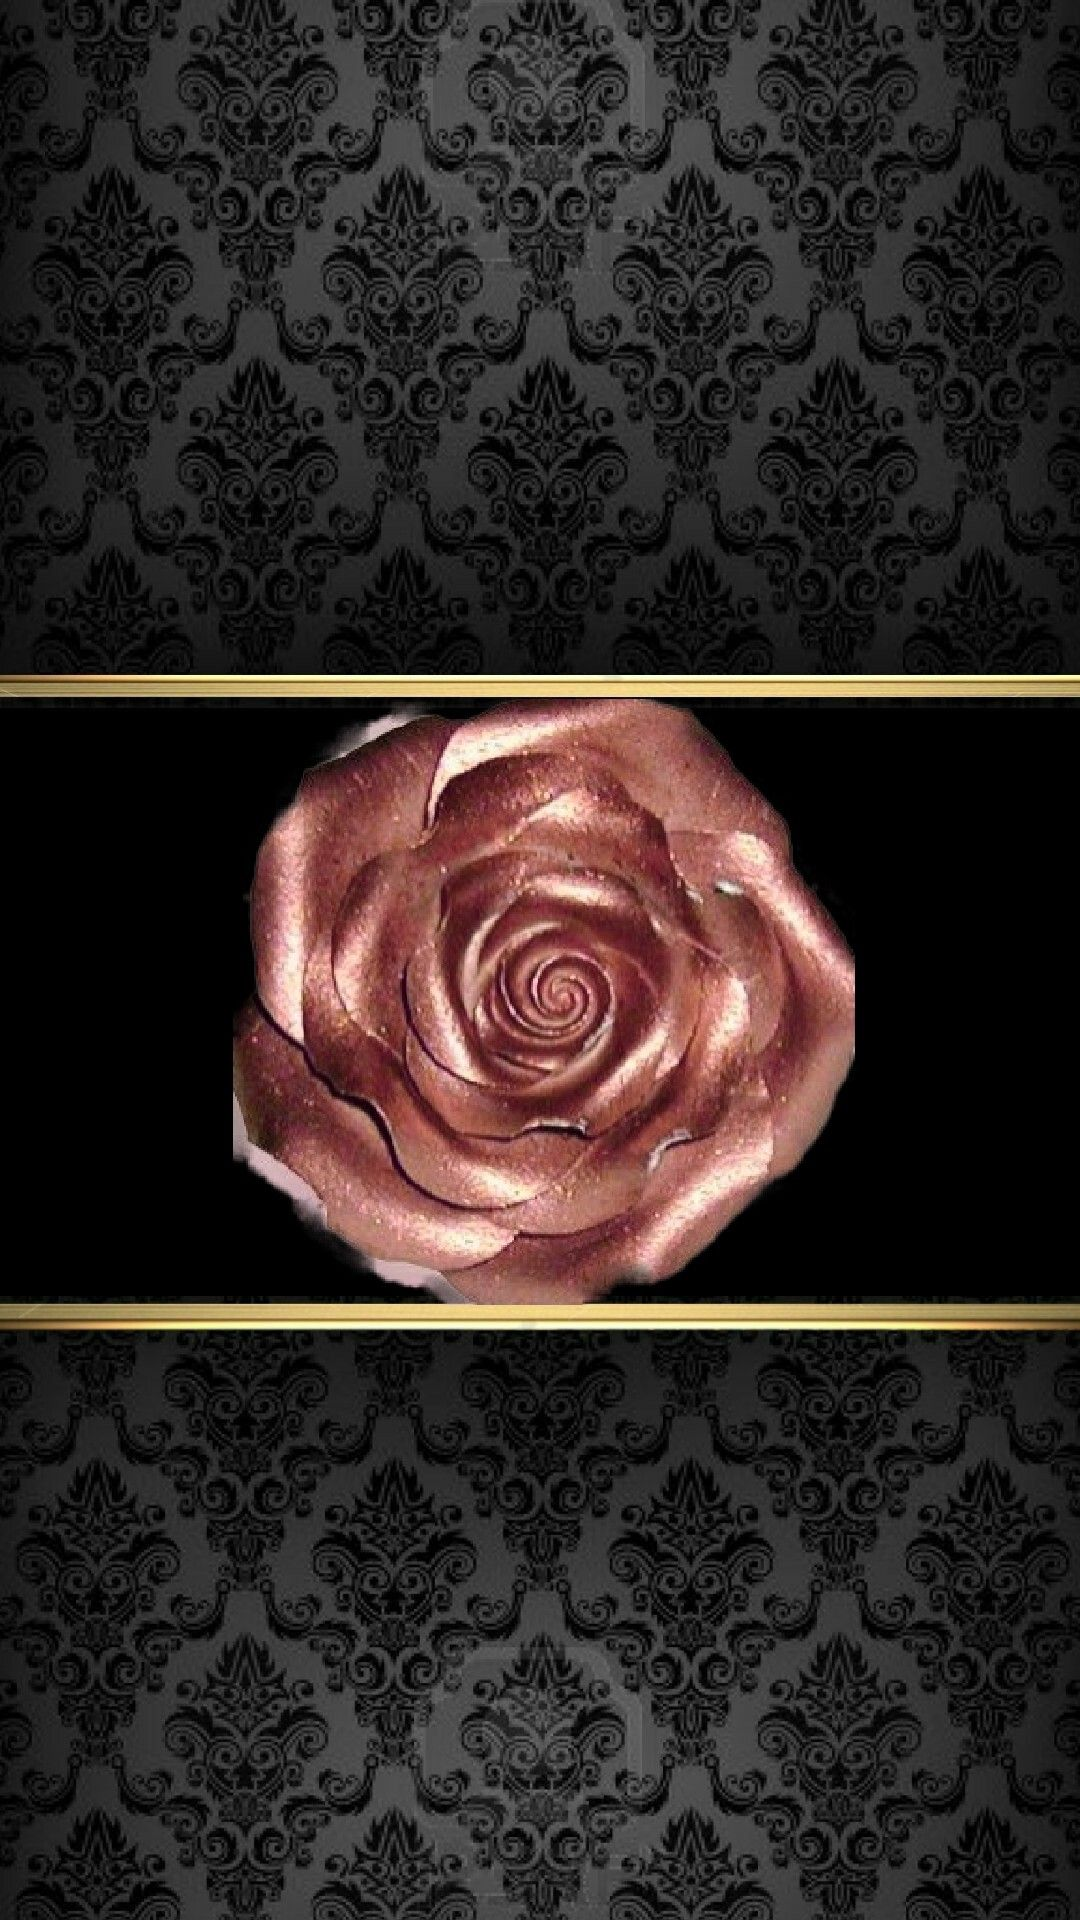 Black,Gold & Rose Gold Wallpaper...By Artist Unknown